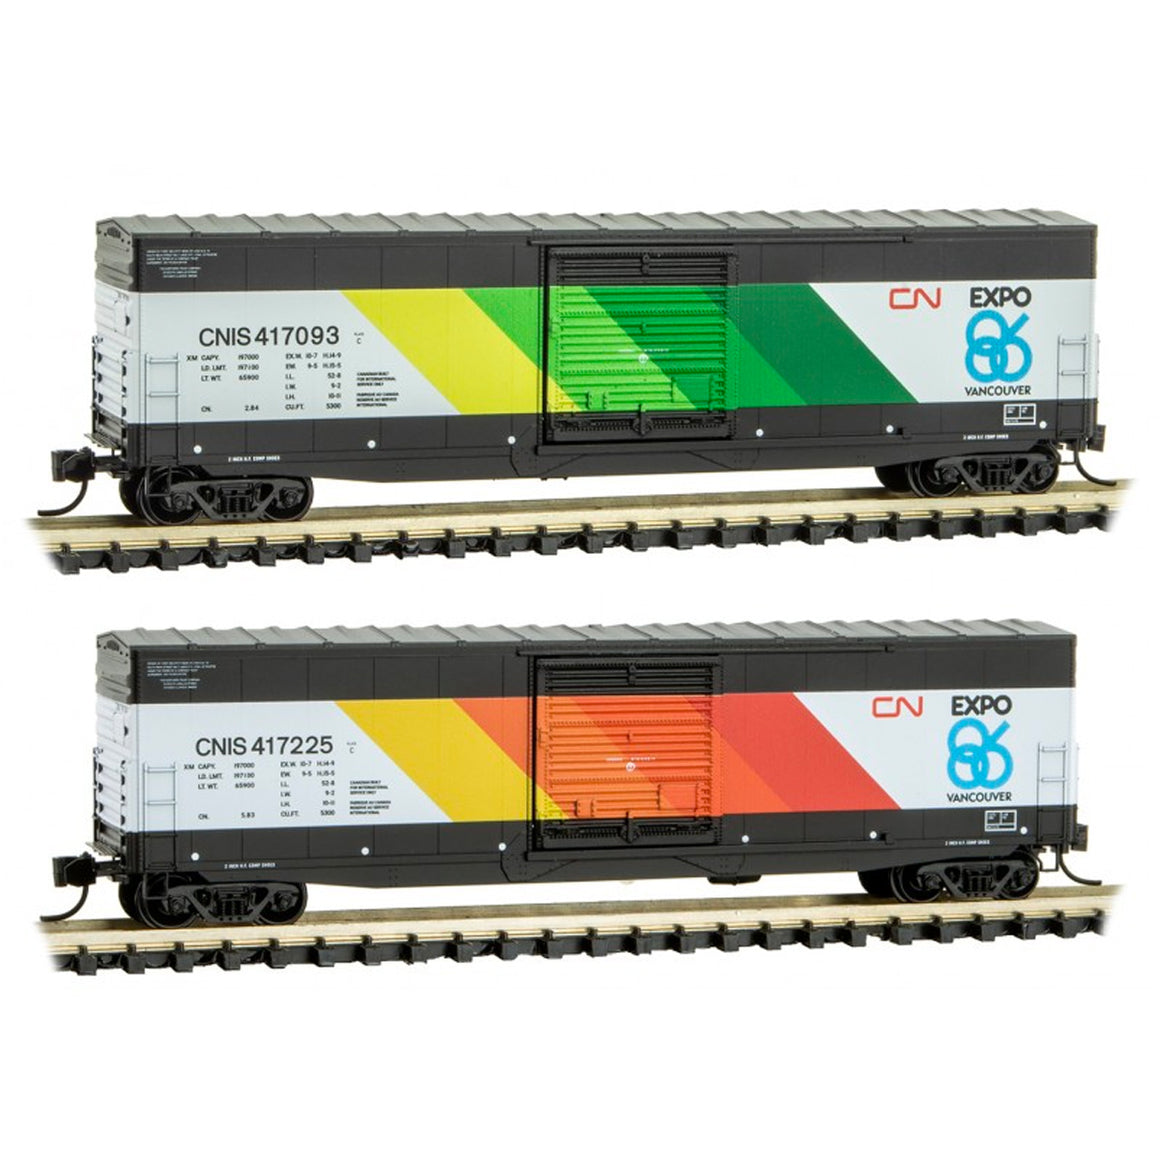 N Scale: 50' Standard Box Car - Canadian National 'EXPO Vancouver' - 2 Pack